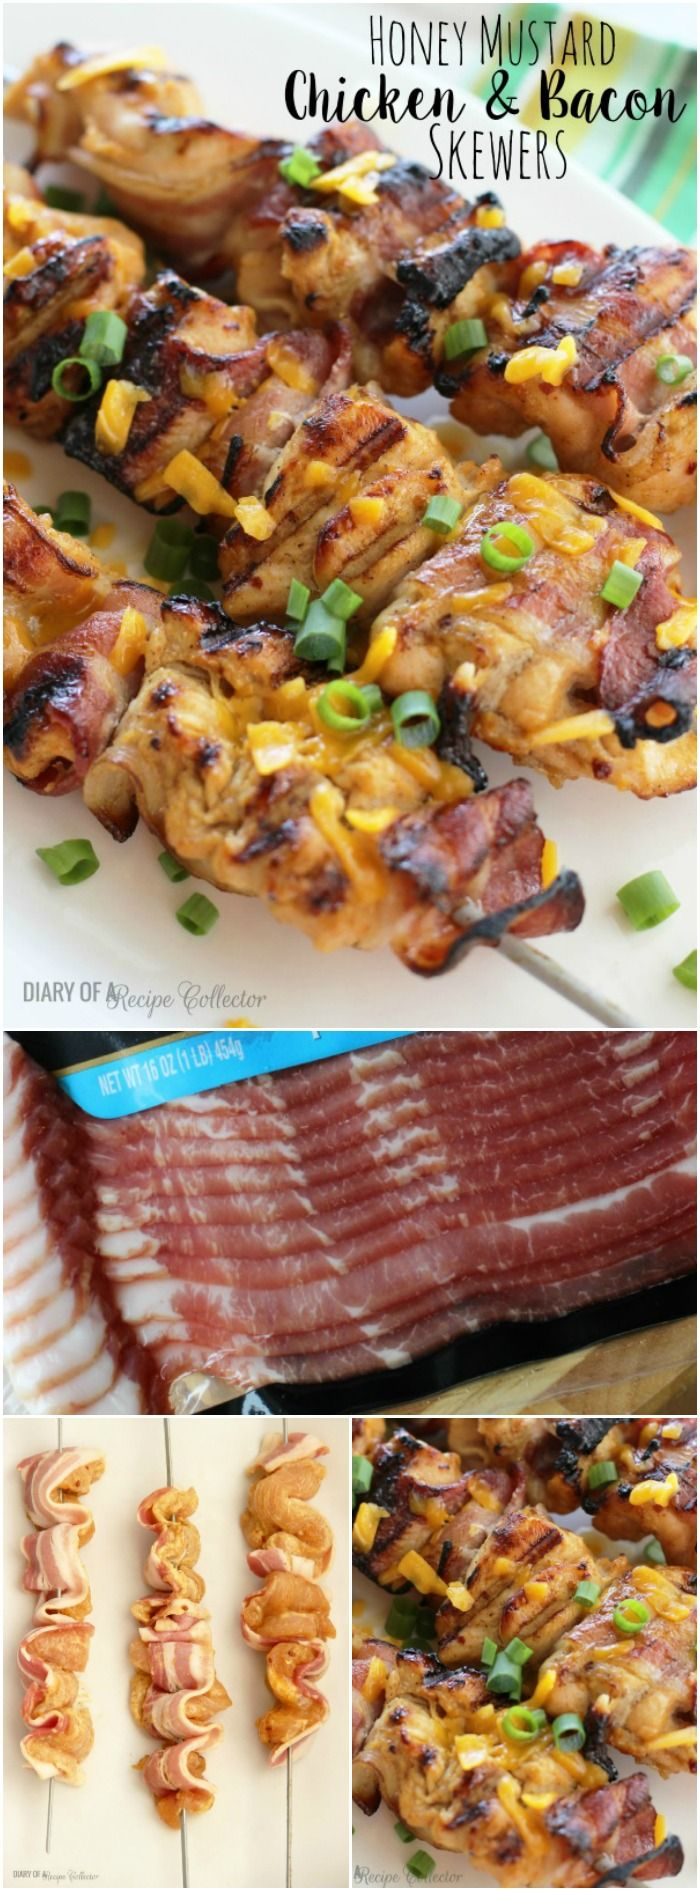 This Honey Mustard Chicken and Bacon Skewers recipe from Diary of a Recipe Collector has the most wonderful honey mustard dressing, delicious Hormel Black Label Bacon, and chicken that is grilled to perfection!